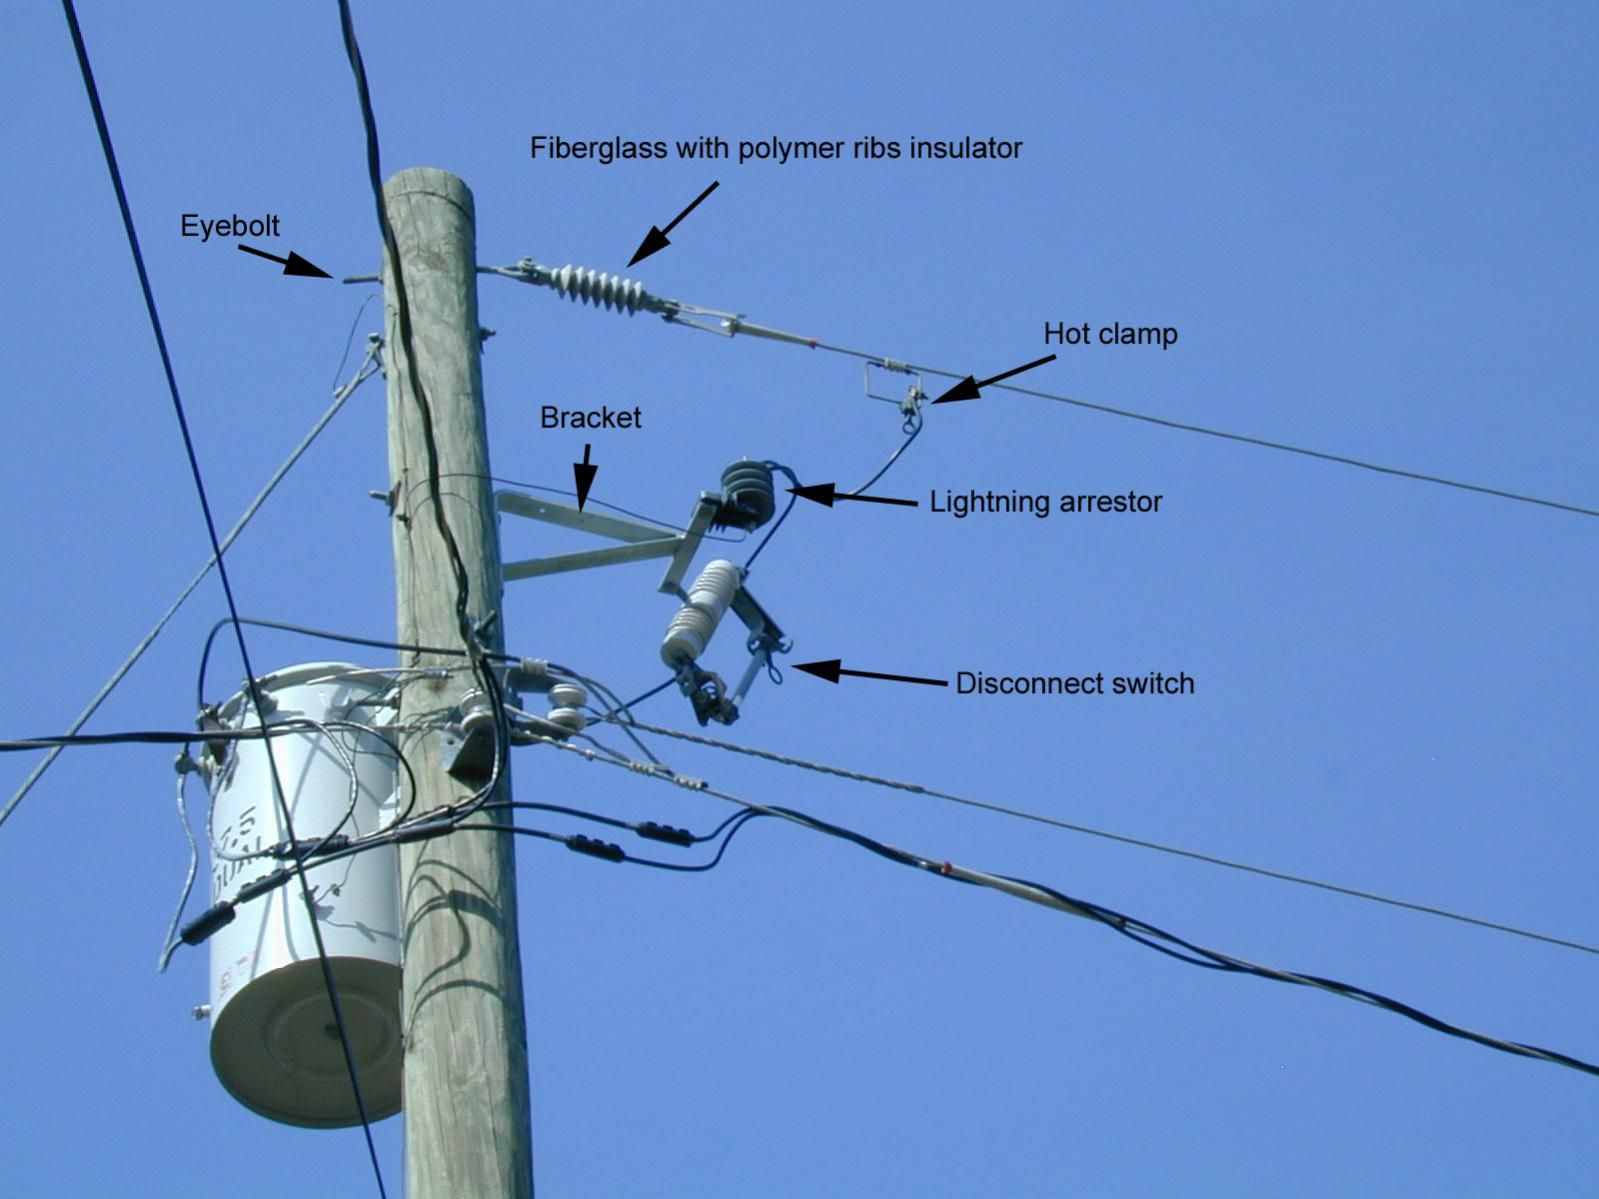 hight resolution of related image utility services electrical wiring utility pole things that bounce transformers